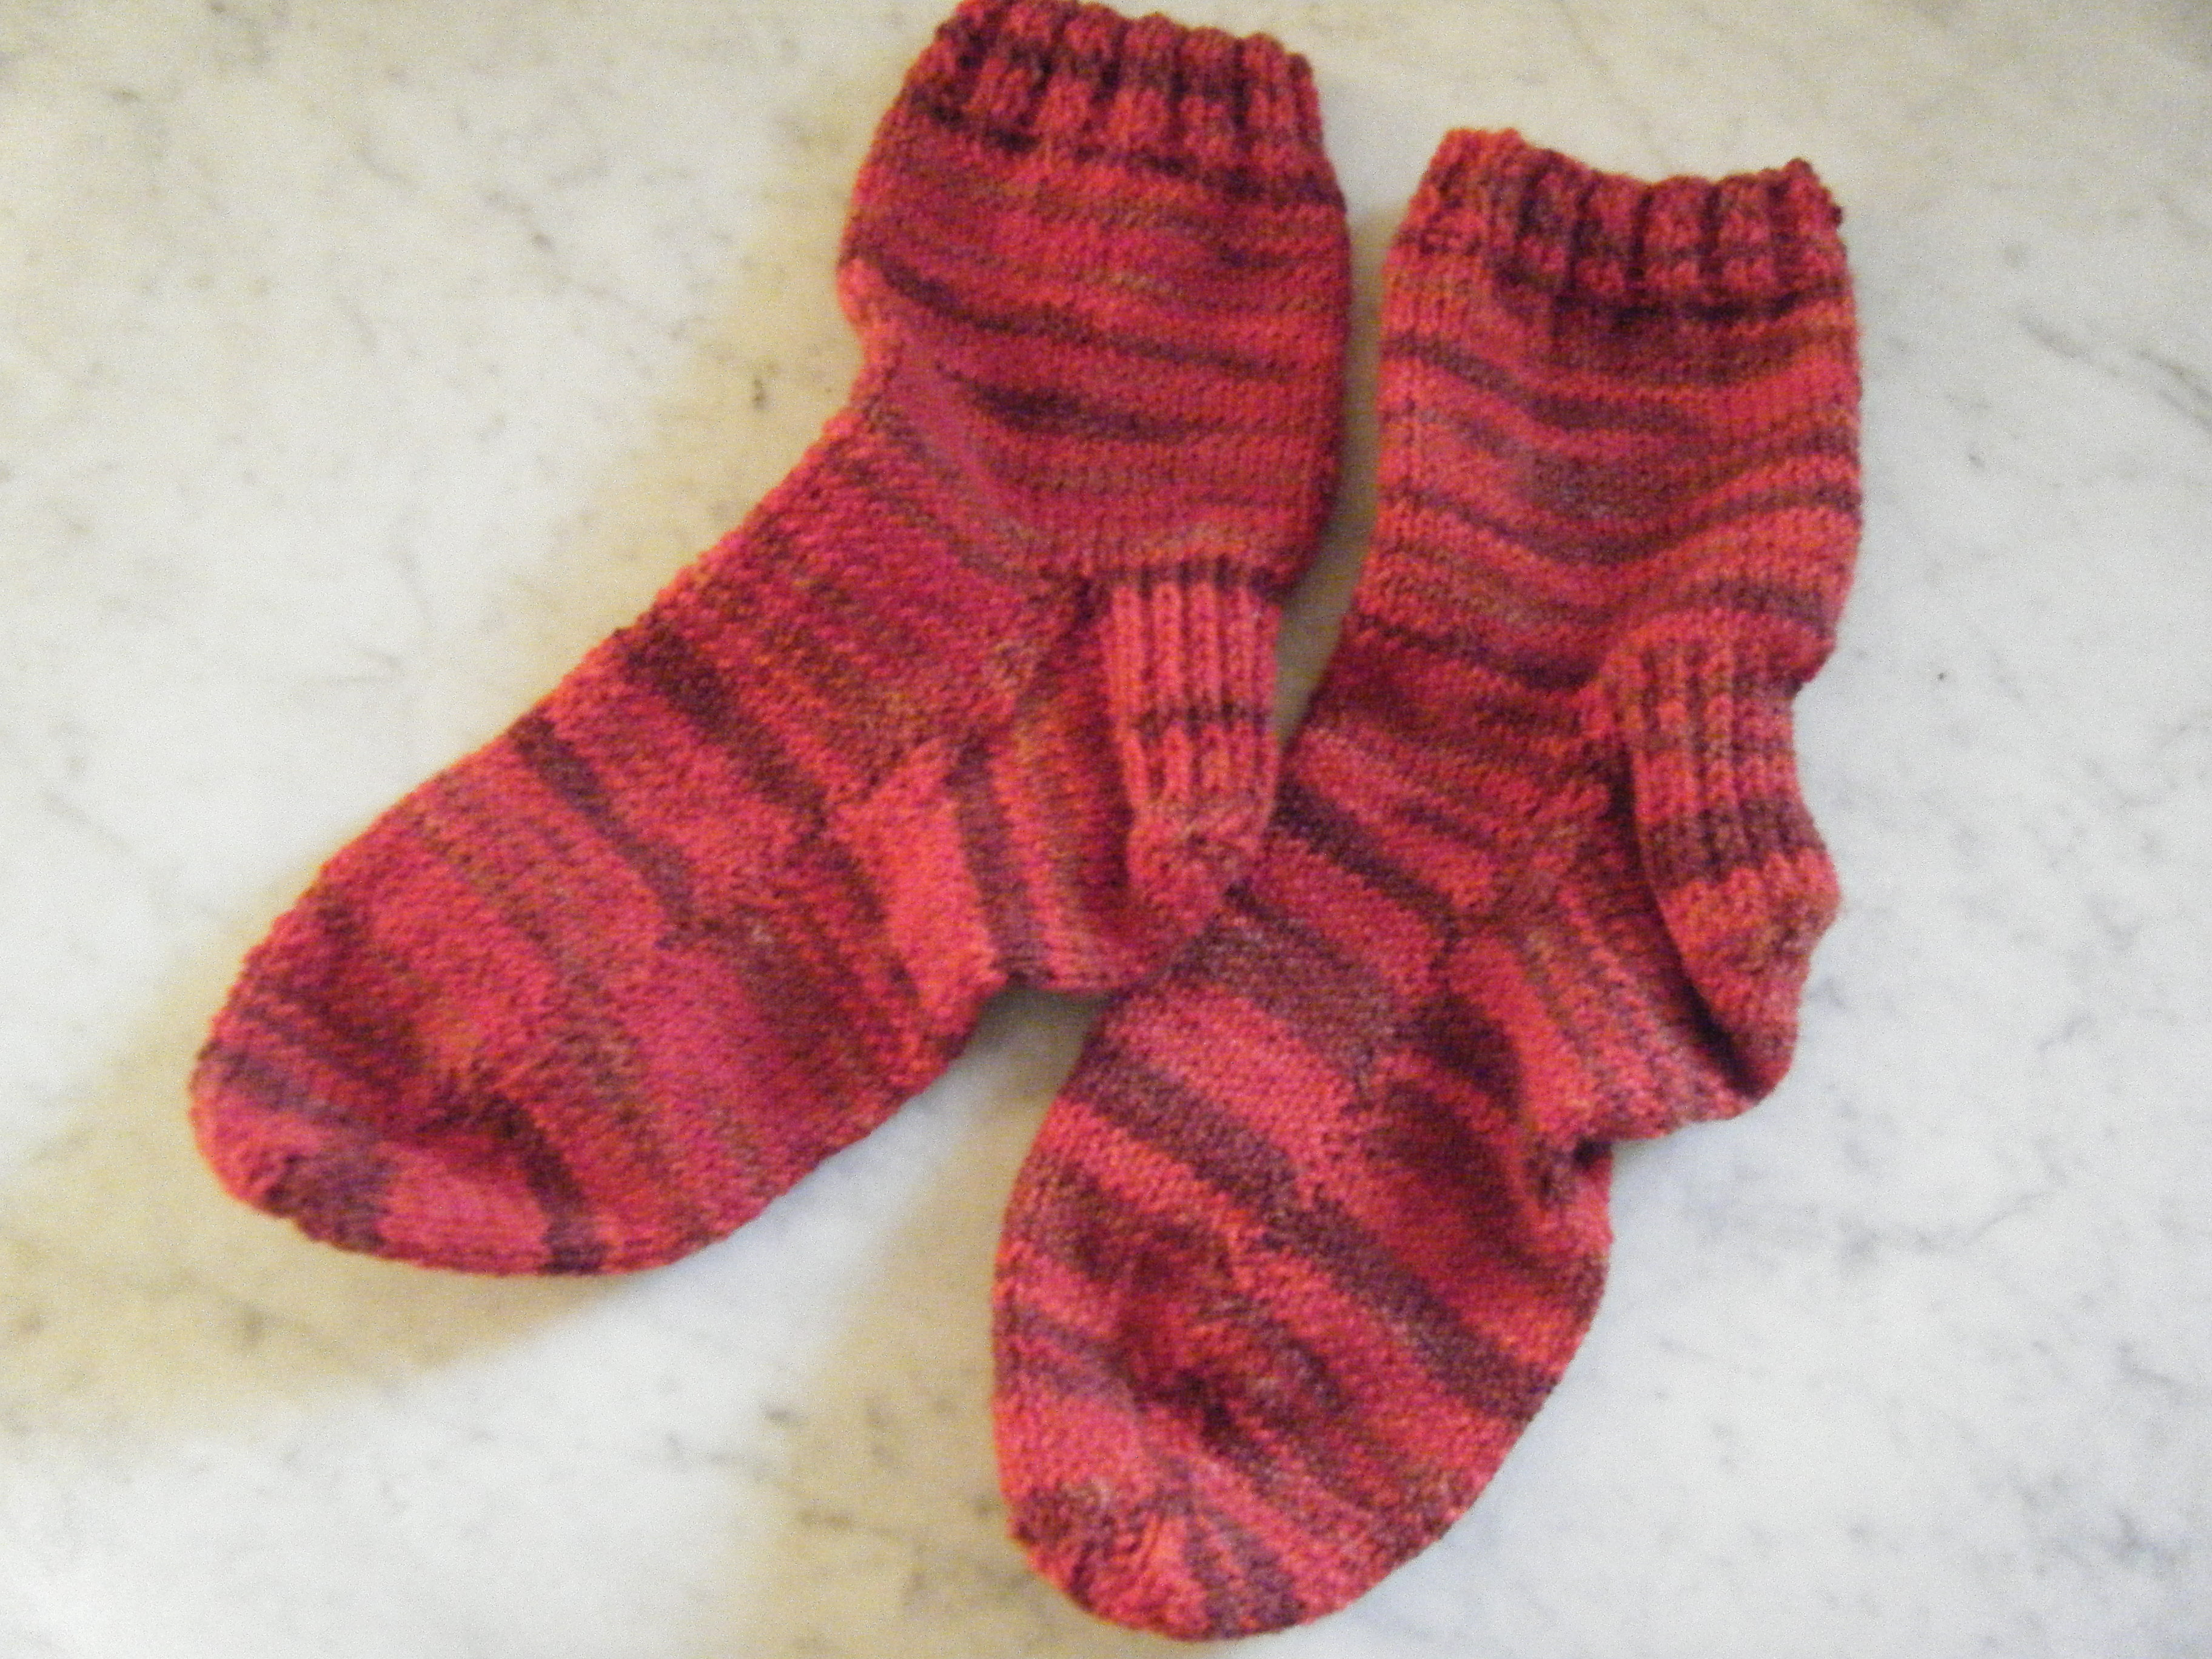 Sunset In Sedona Two Needle Socks | Liver Chick Knits